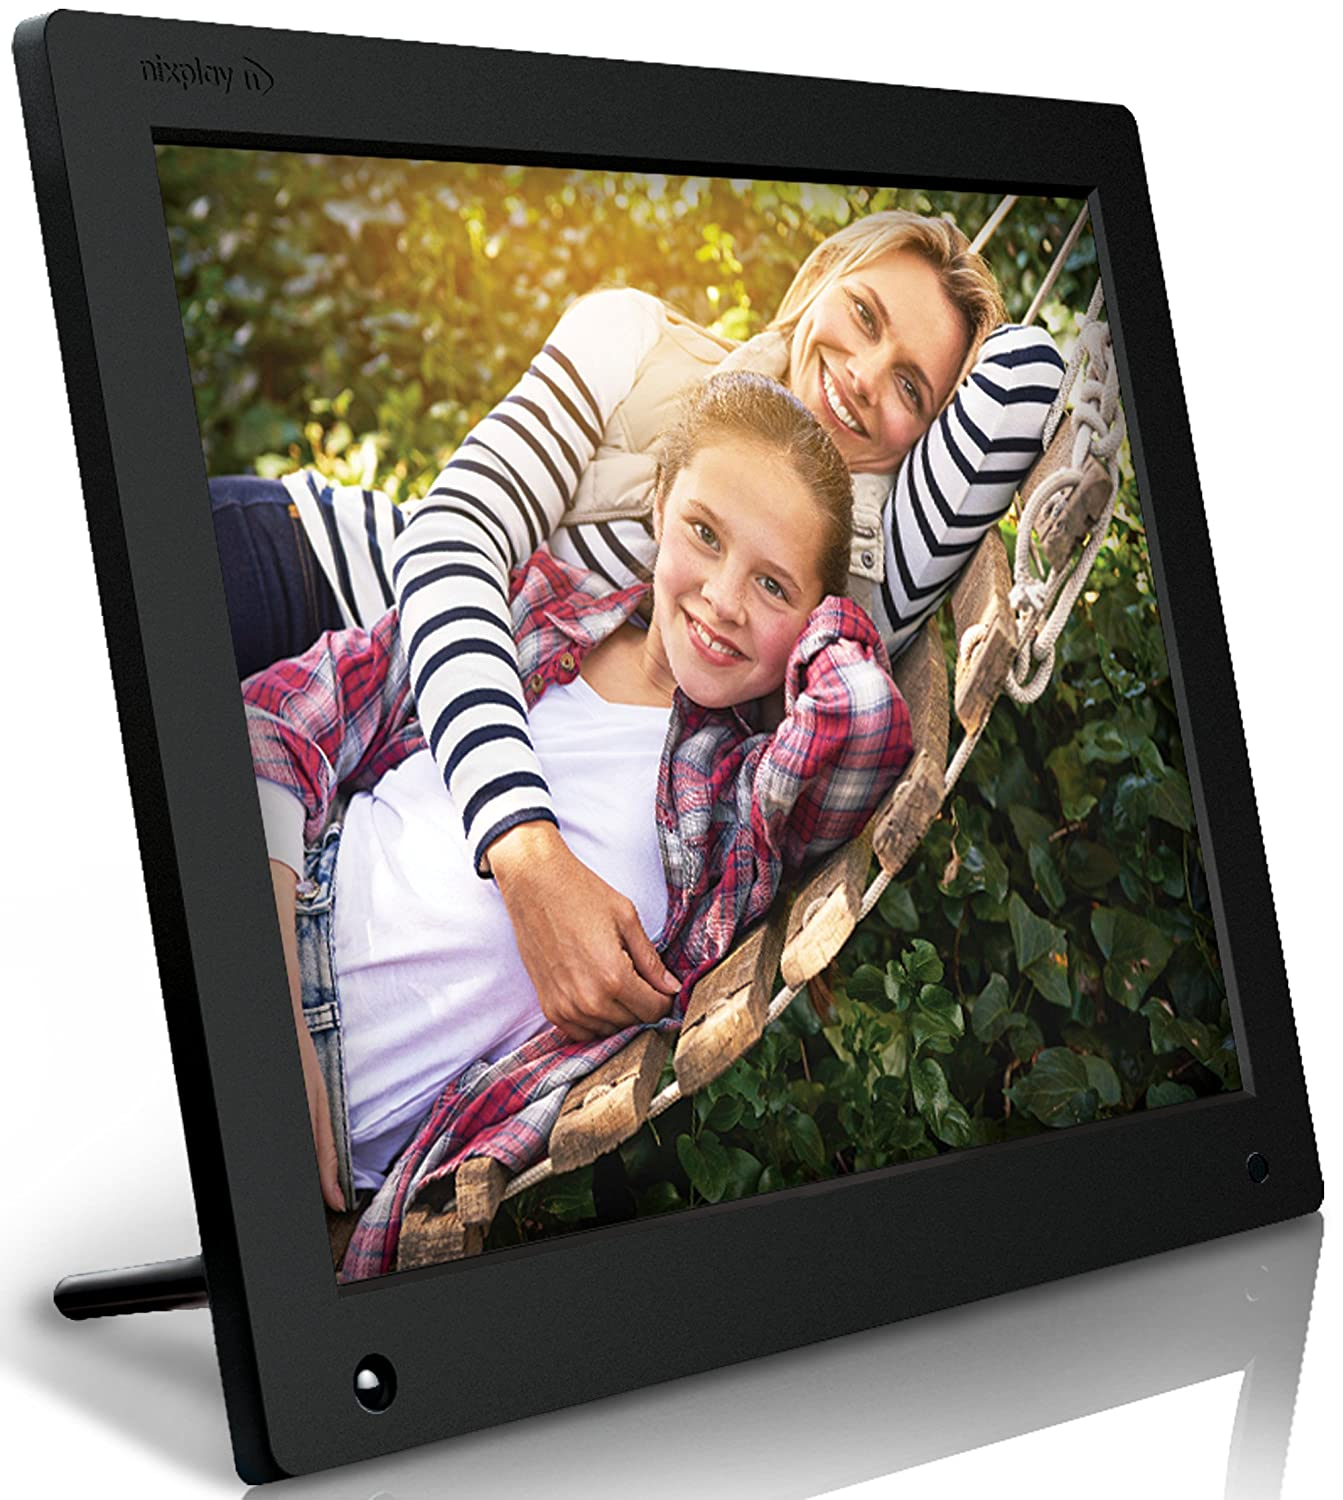 Amazon.com : Nixplay Original 15 inch WiFi Cloud Digital Photo Frame ...